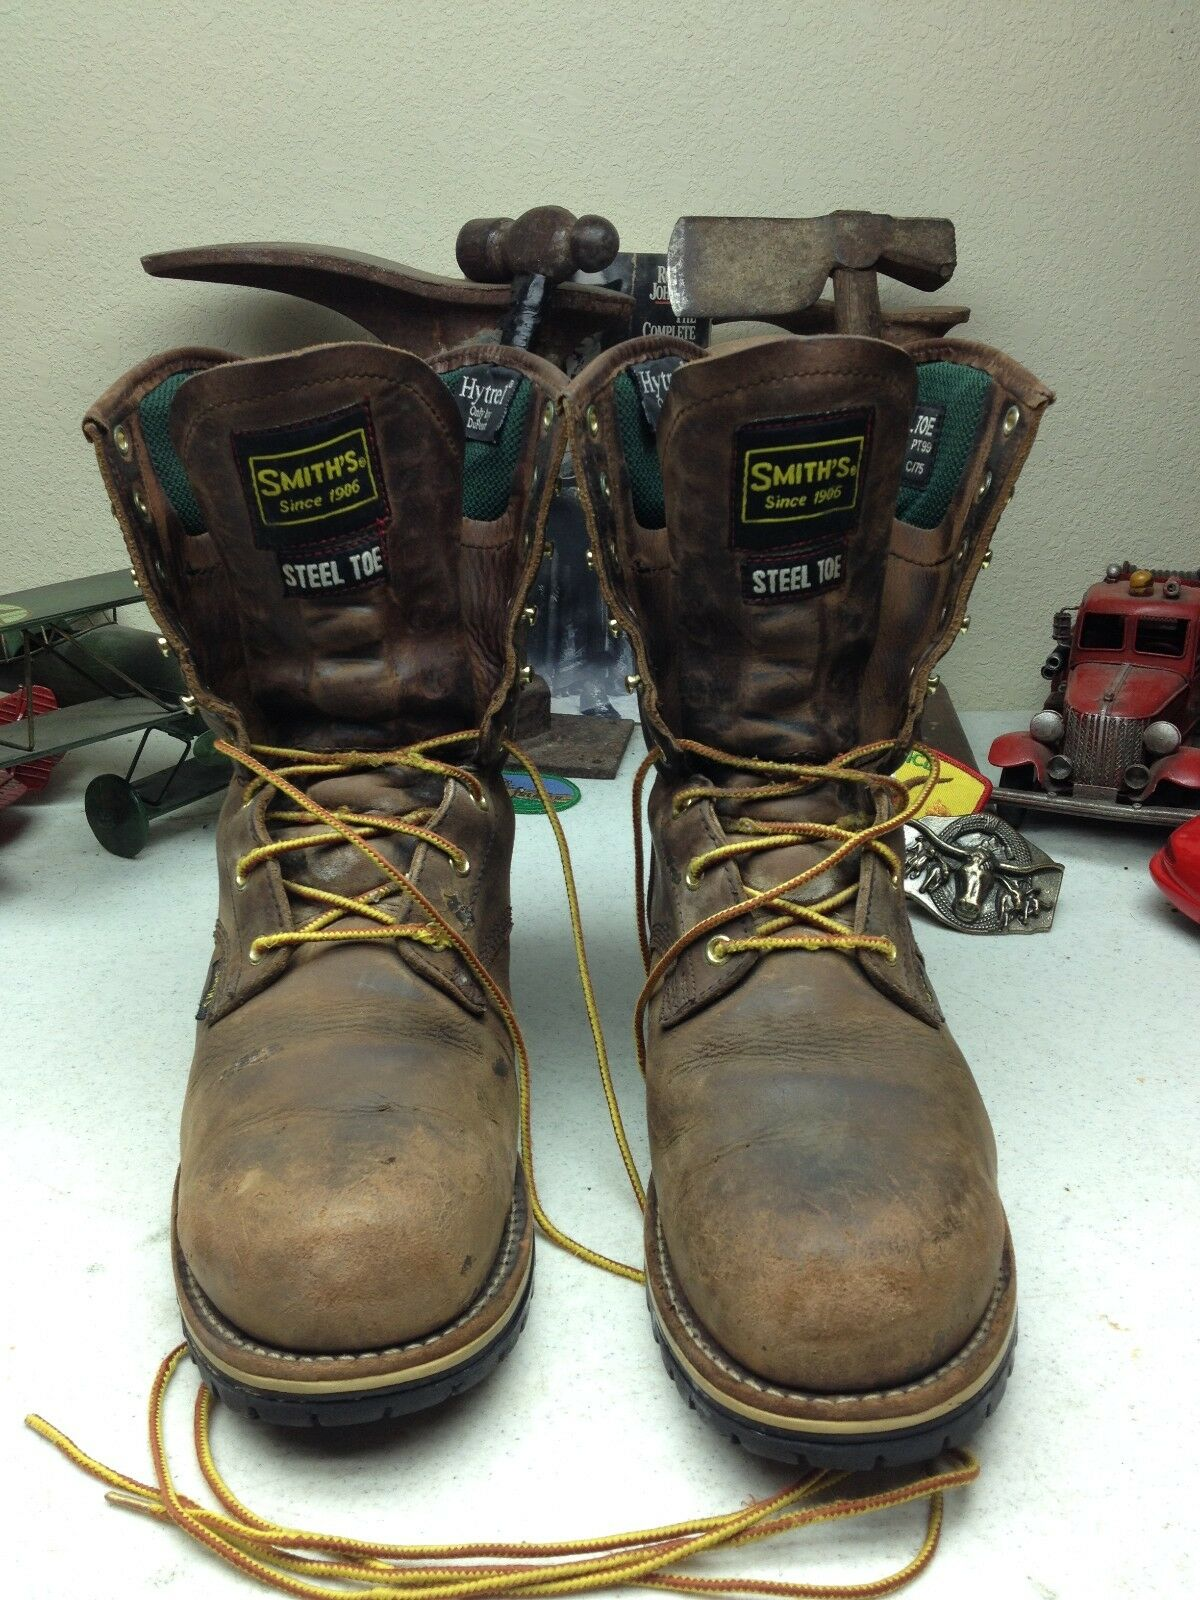 DISTRESSED SMITH'S STEEL TOE LACE UP PACKER CHORE WORK & SAFTEY BOOTS SIZE 10.5D